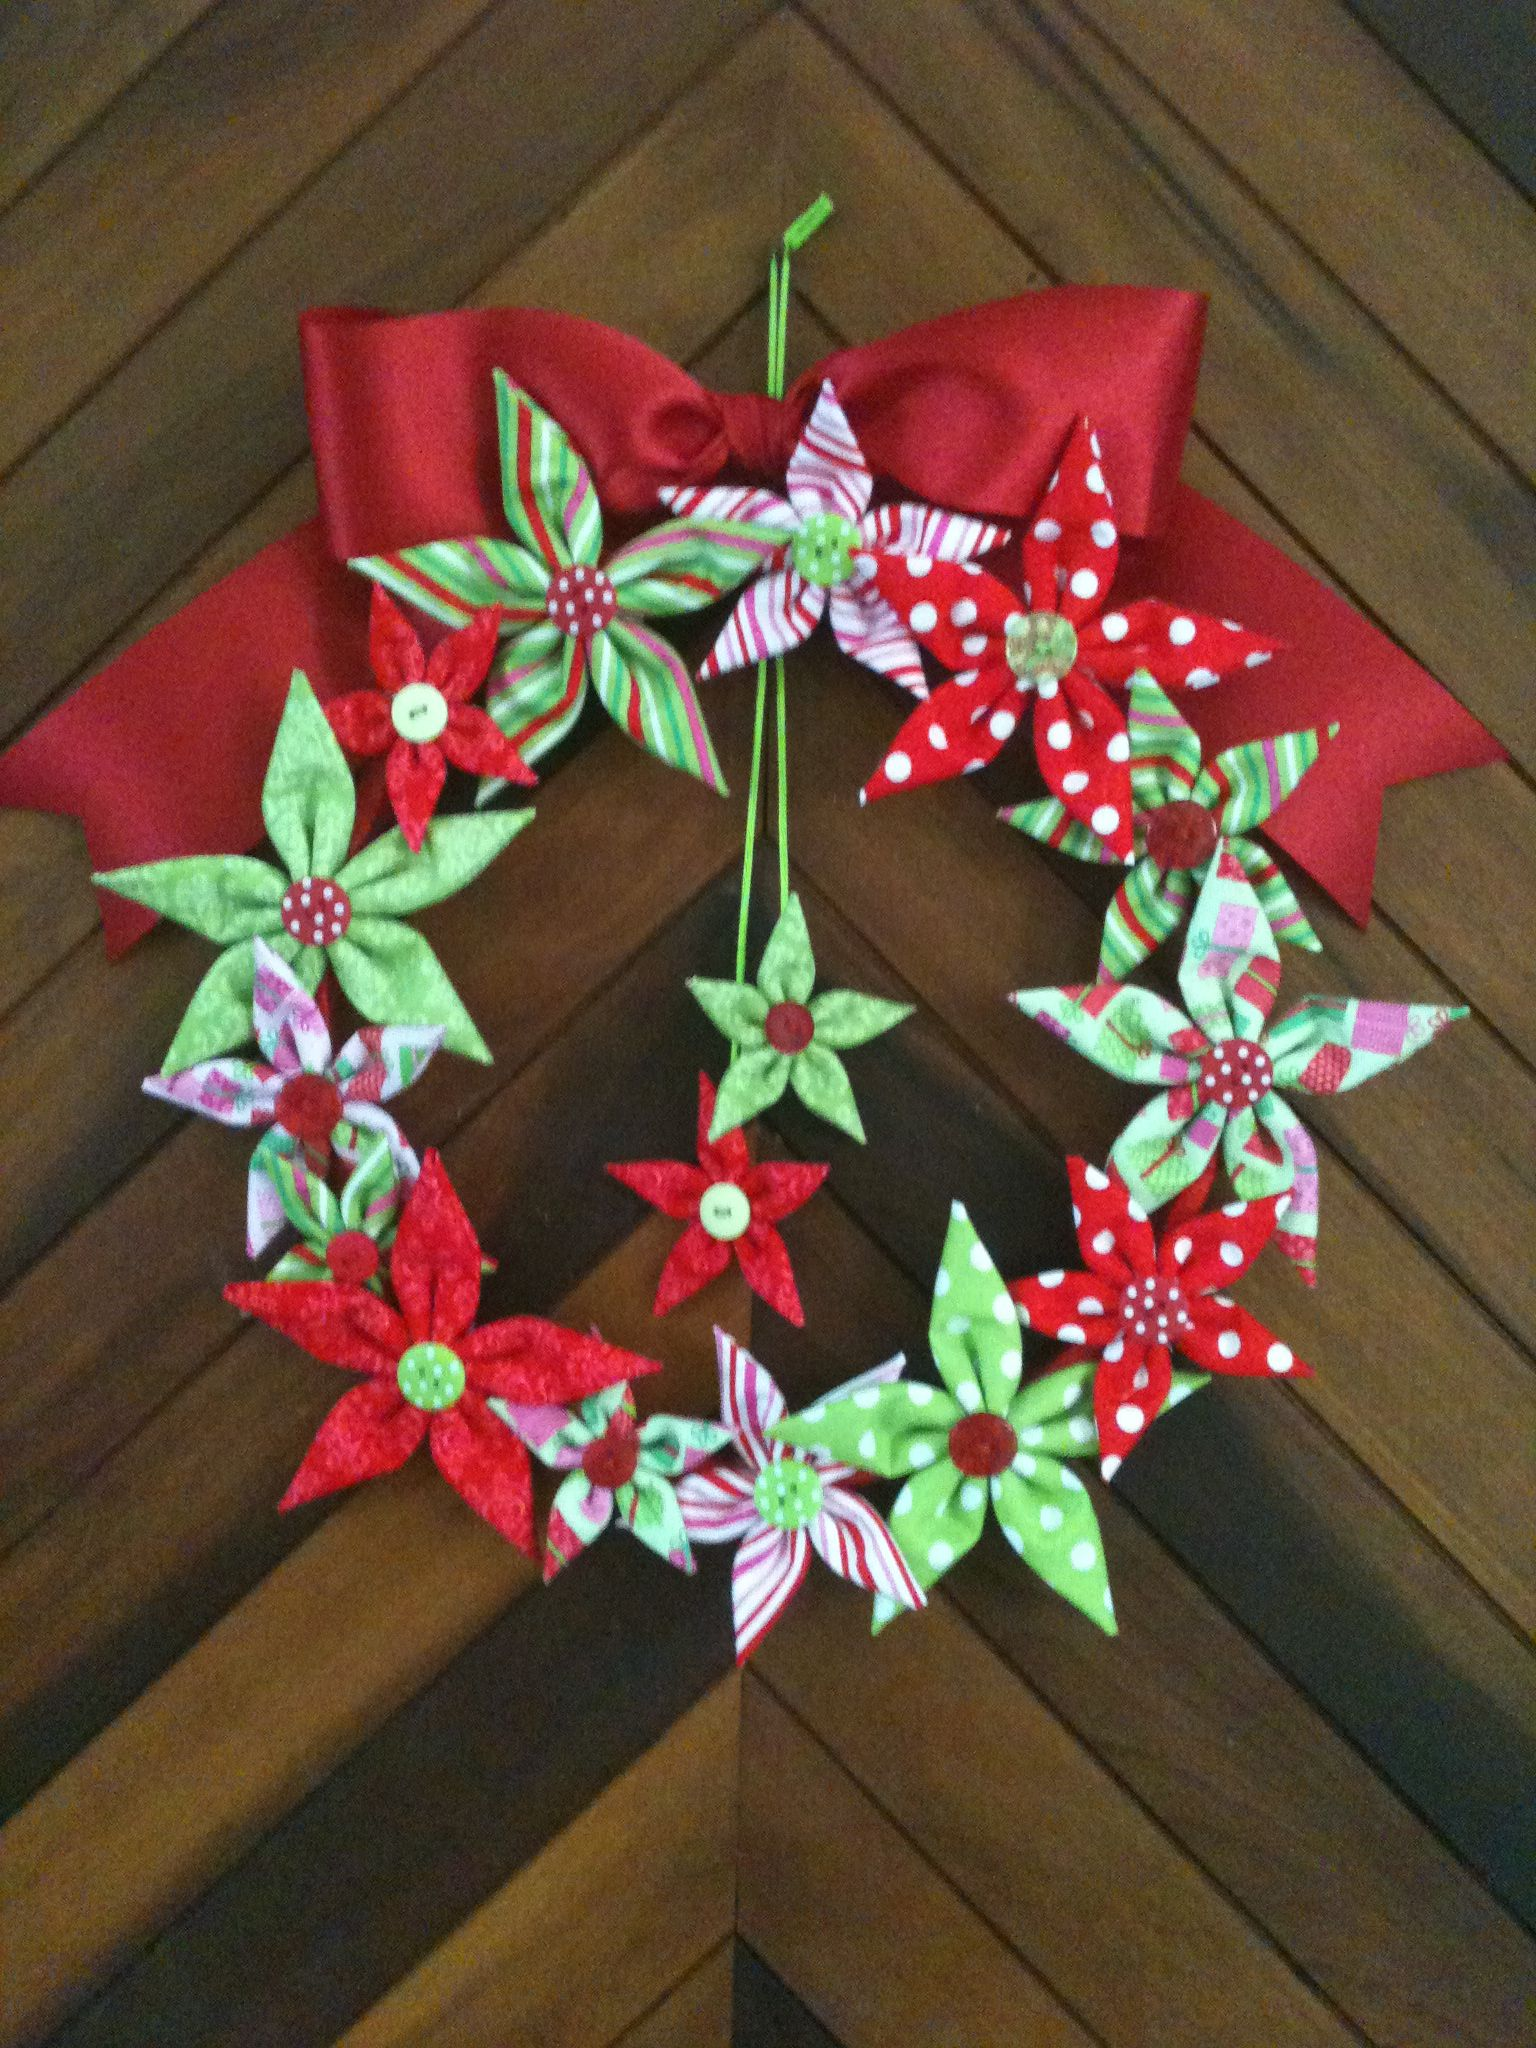 Margarita ornament - Fabric Stars Wreath Designed And Created By Margarita